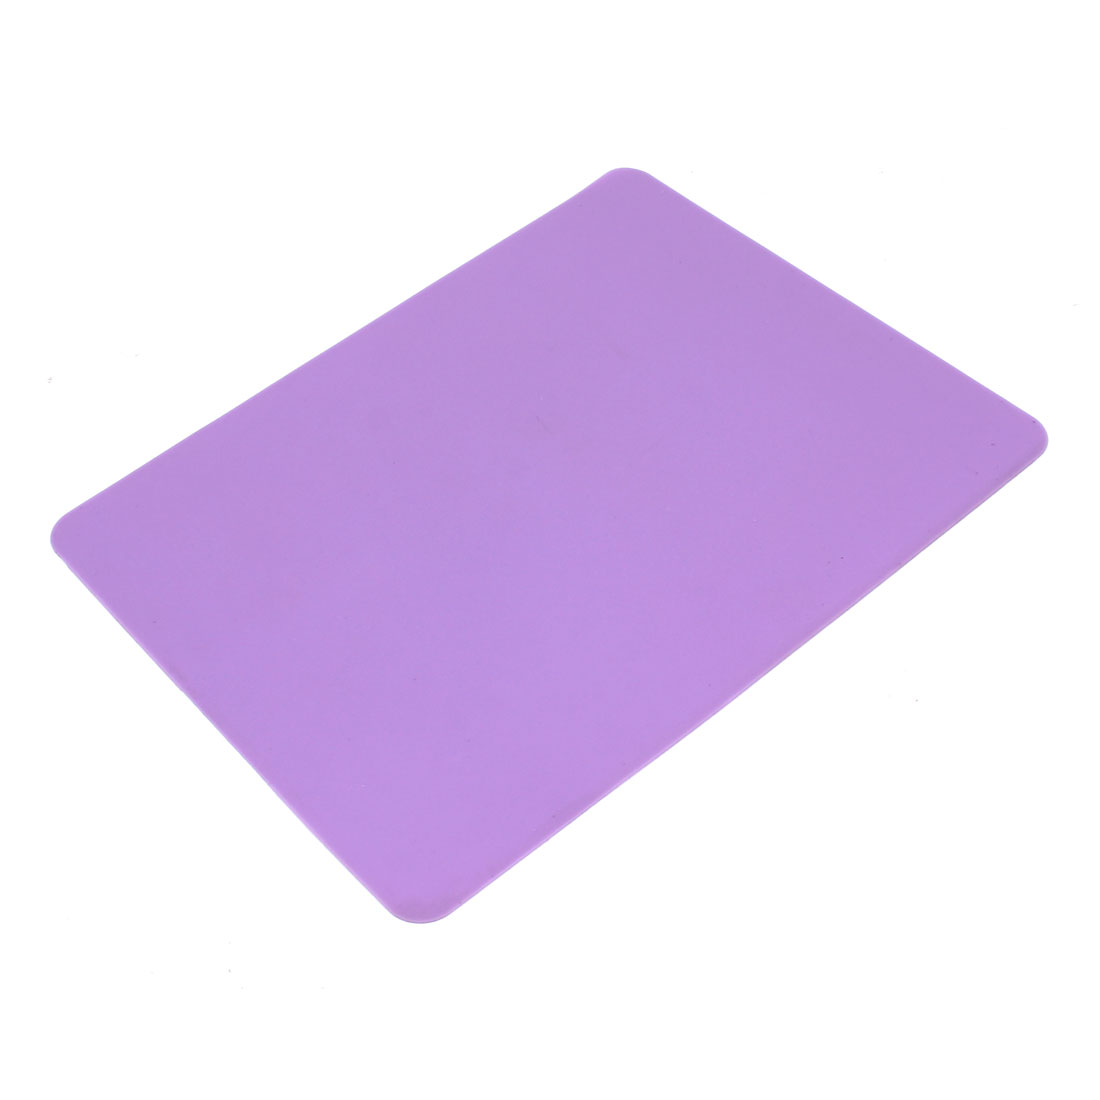 Purple Non-slip Soft Silicone Mice Pad Mat Mousepad for Laptop Computer